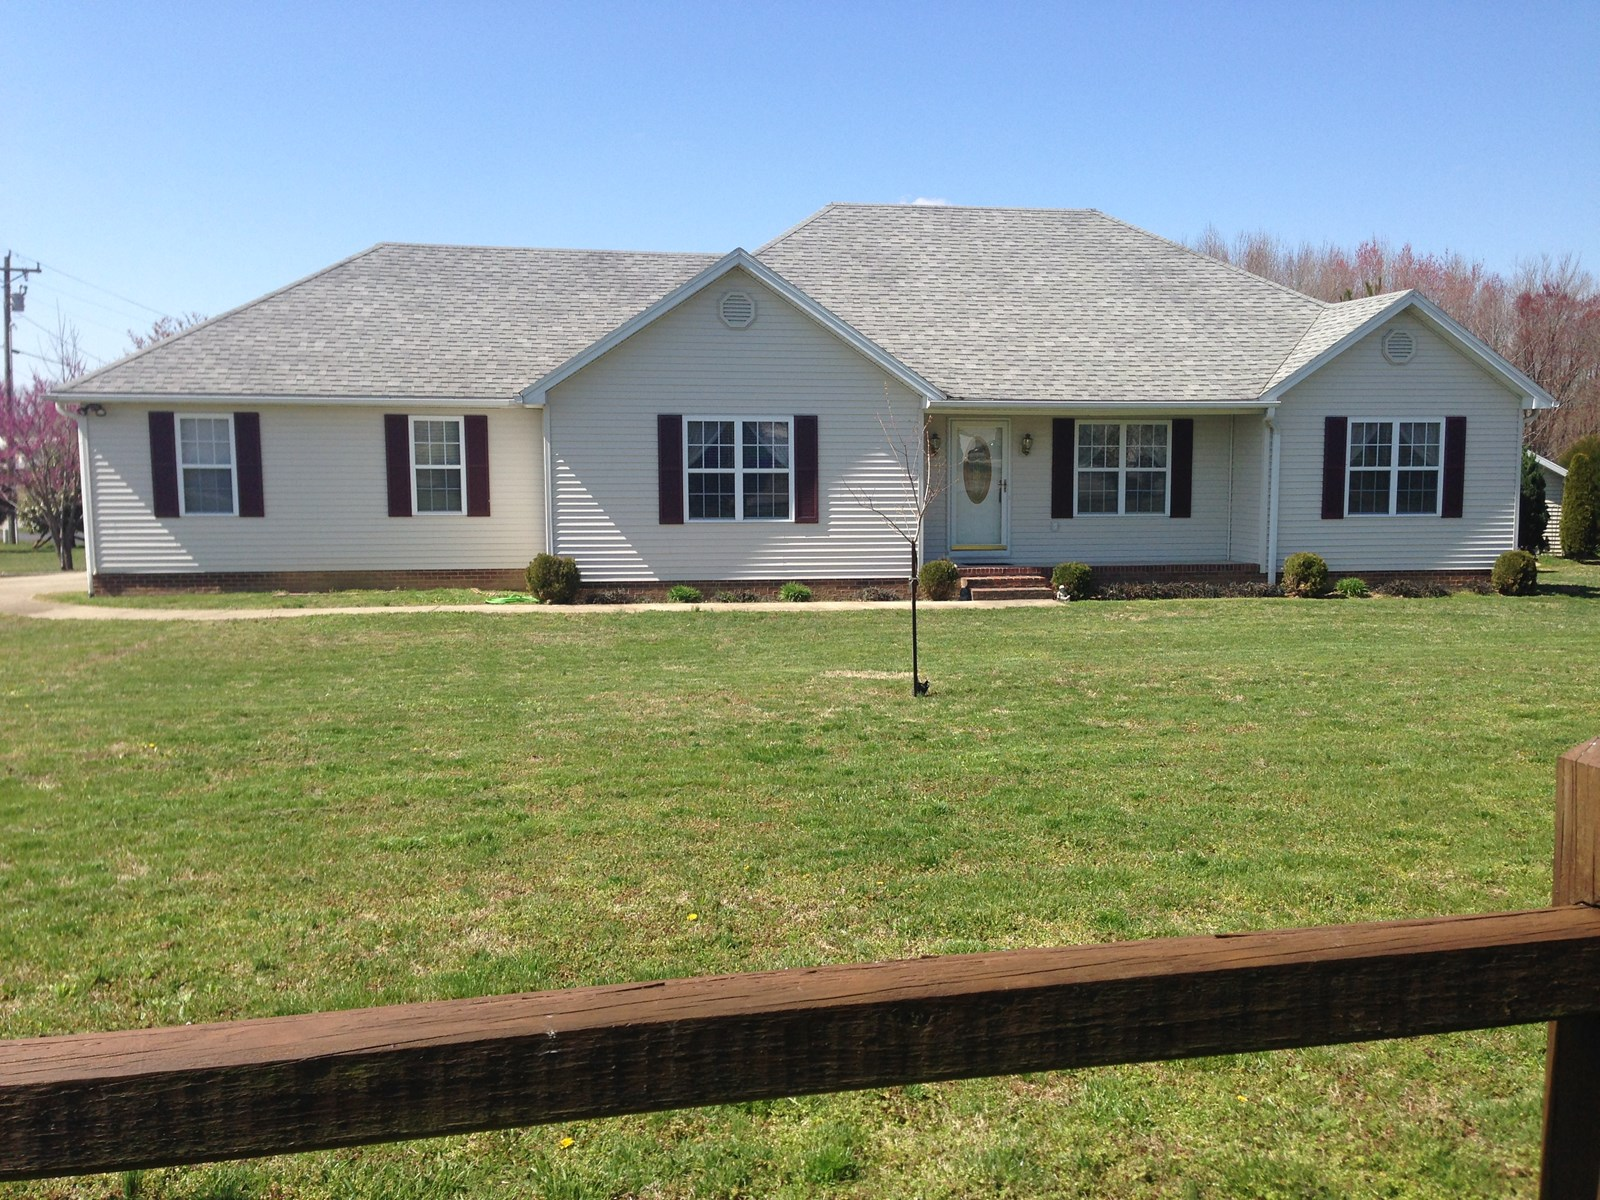 3 Bedroom 2 Bath Country Home for sale near Glasgow, Ky.